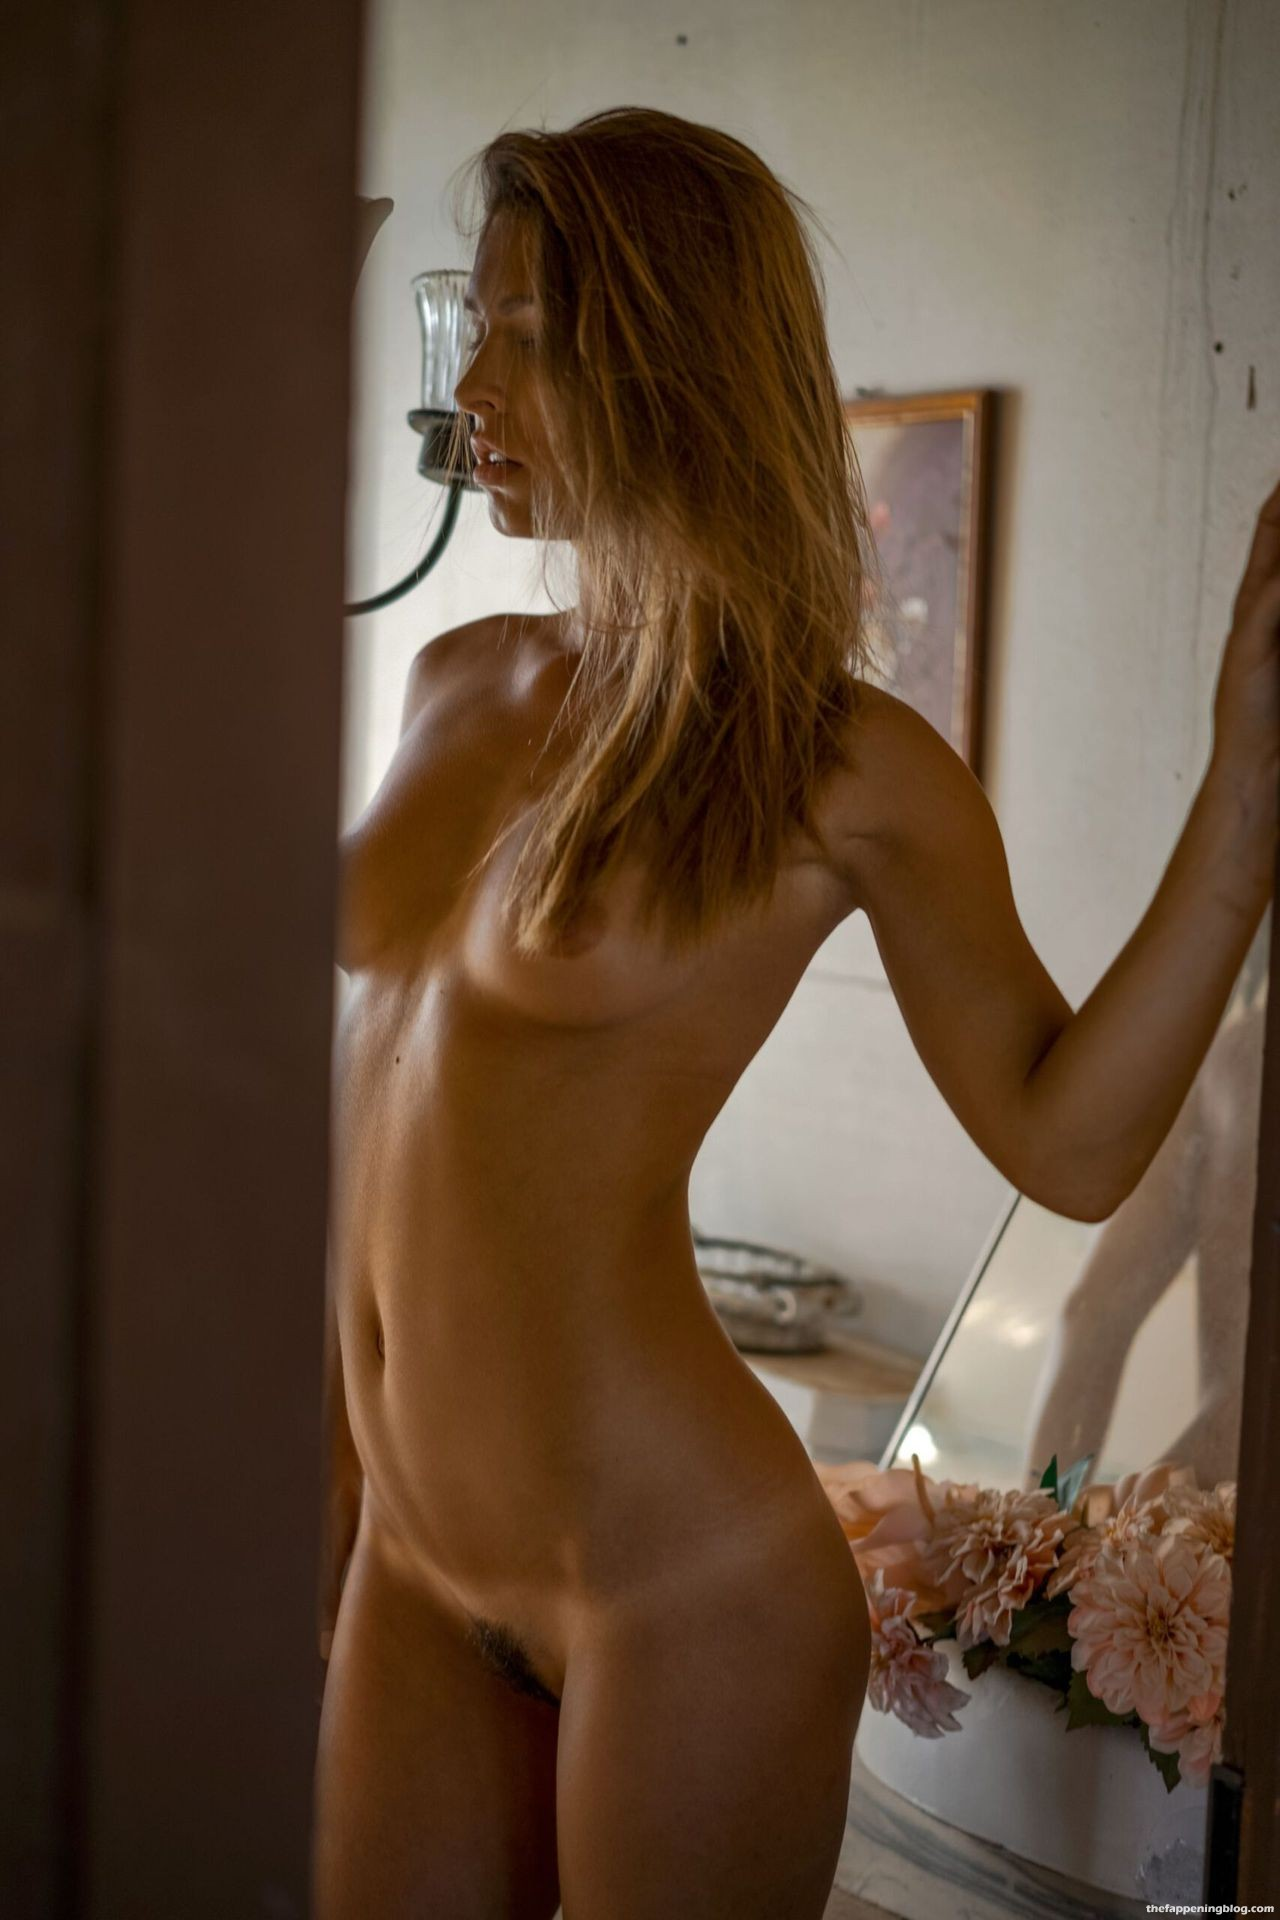 Marisa-Papen-Stunning-Naked-Body-8-scaled1-thefappeningblog.com_.jpg